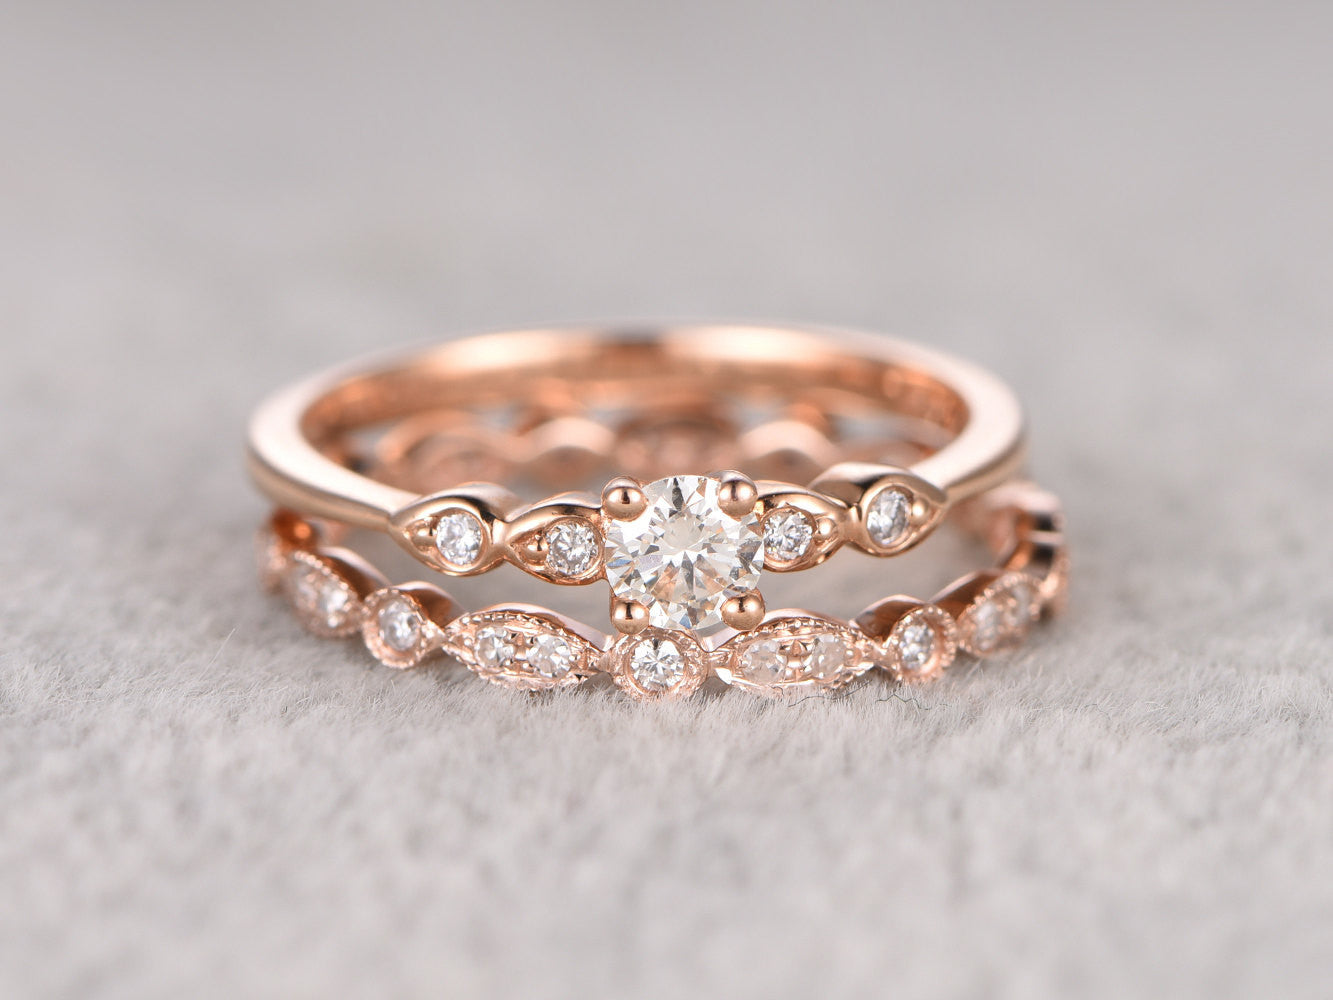 2pcs Moissanite Bridal Set,Engagement ring Rose gold,Full eternity Diamond wedding band,5mm Round stone Promise Ring,Art Deco Inifinity ring